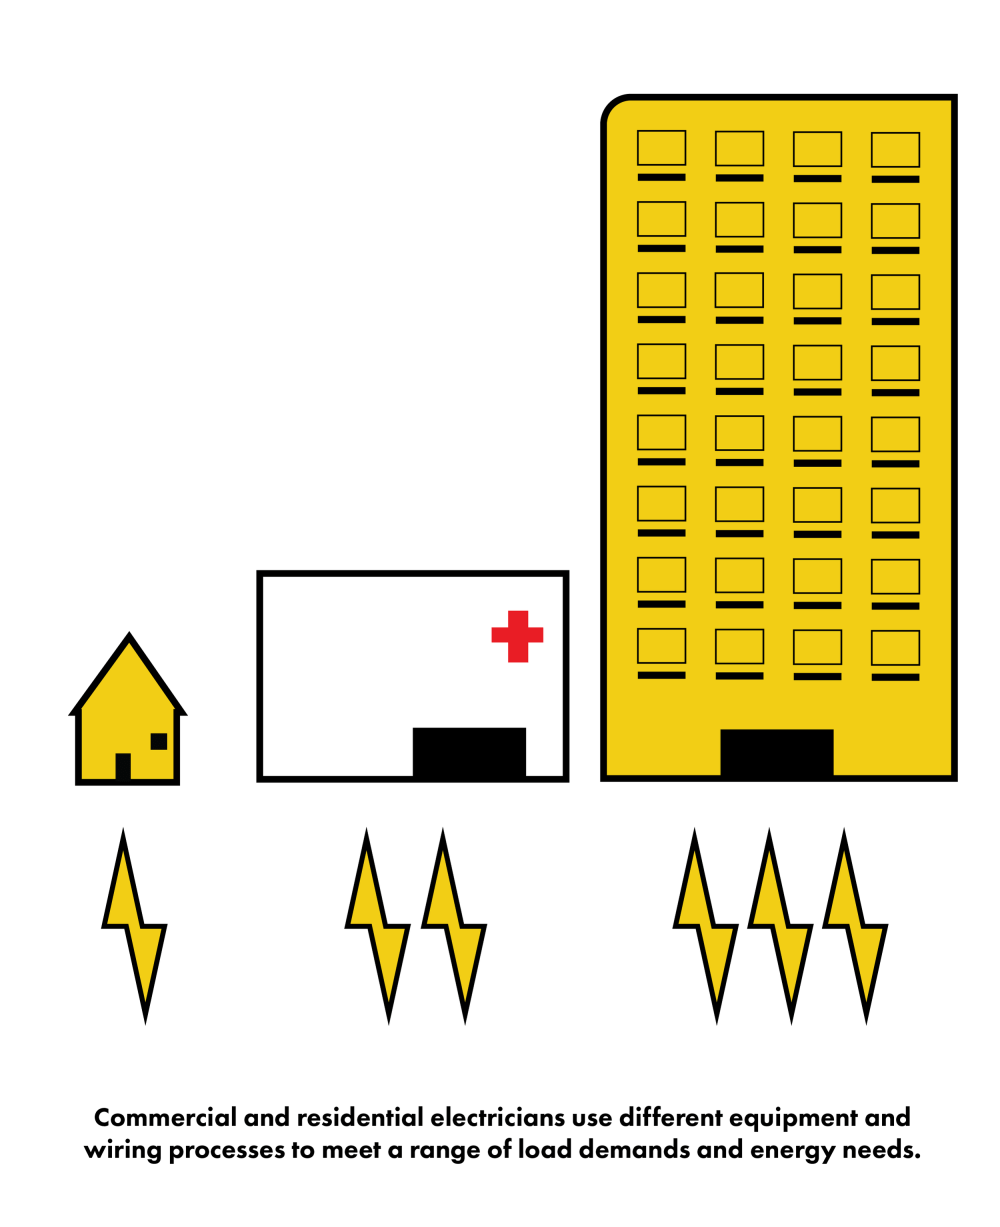 medium resolution of signs you may need an electrician guide graphics 09 png